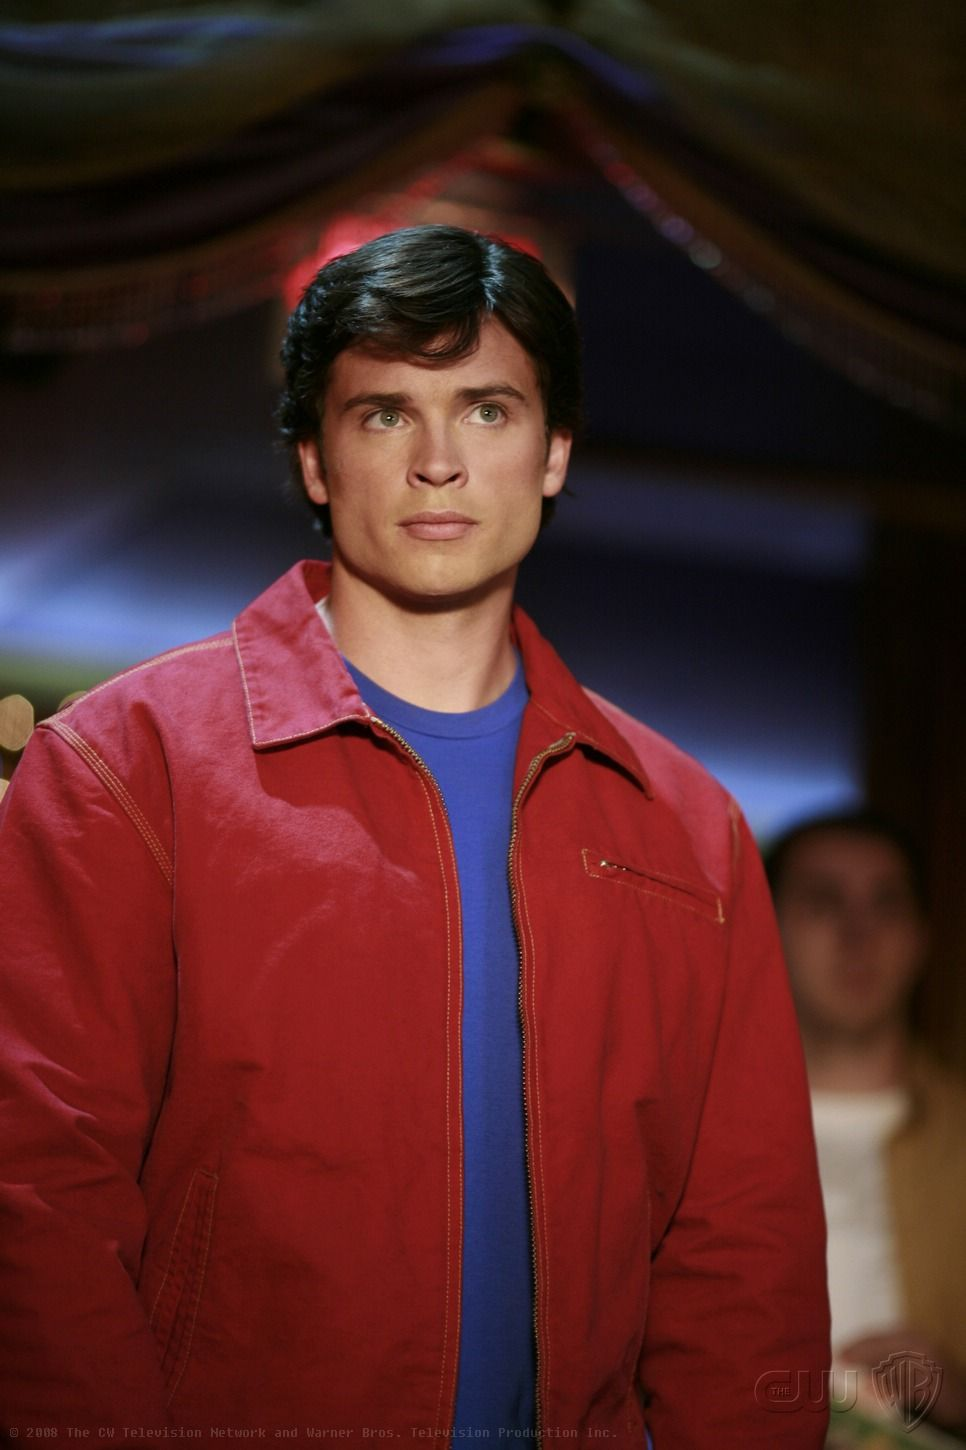 Clark kent smallville smallville pinterest for Kent superman